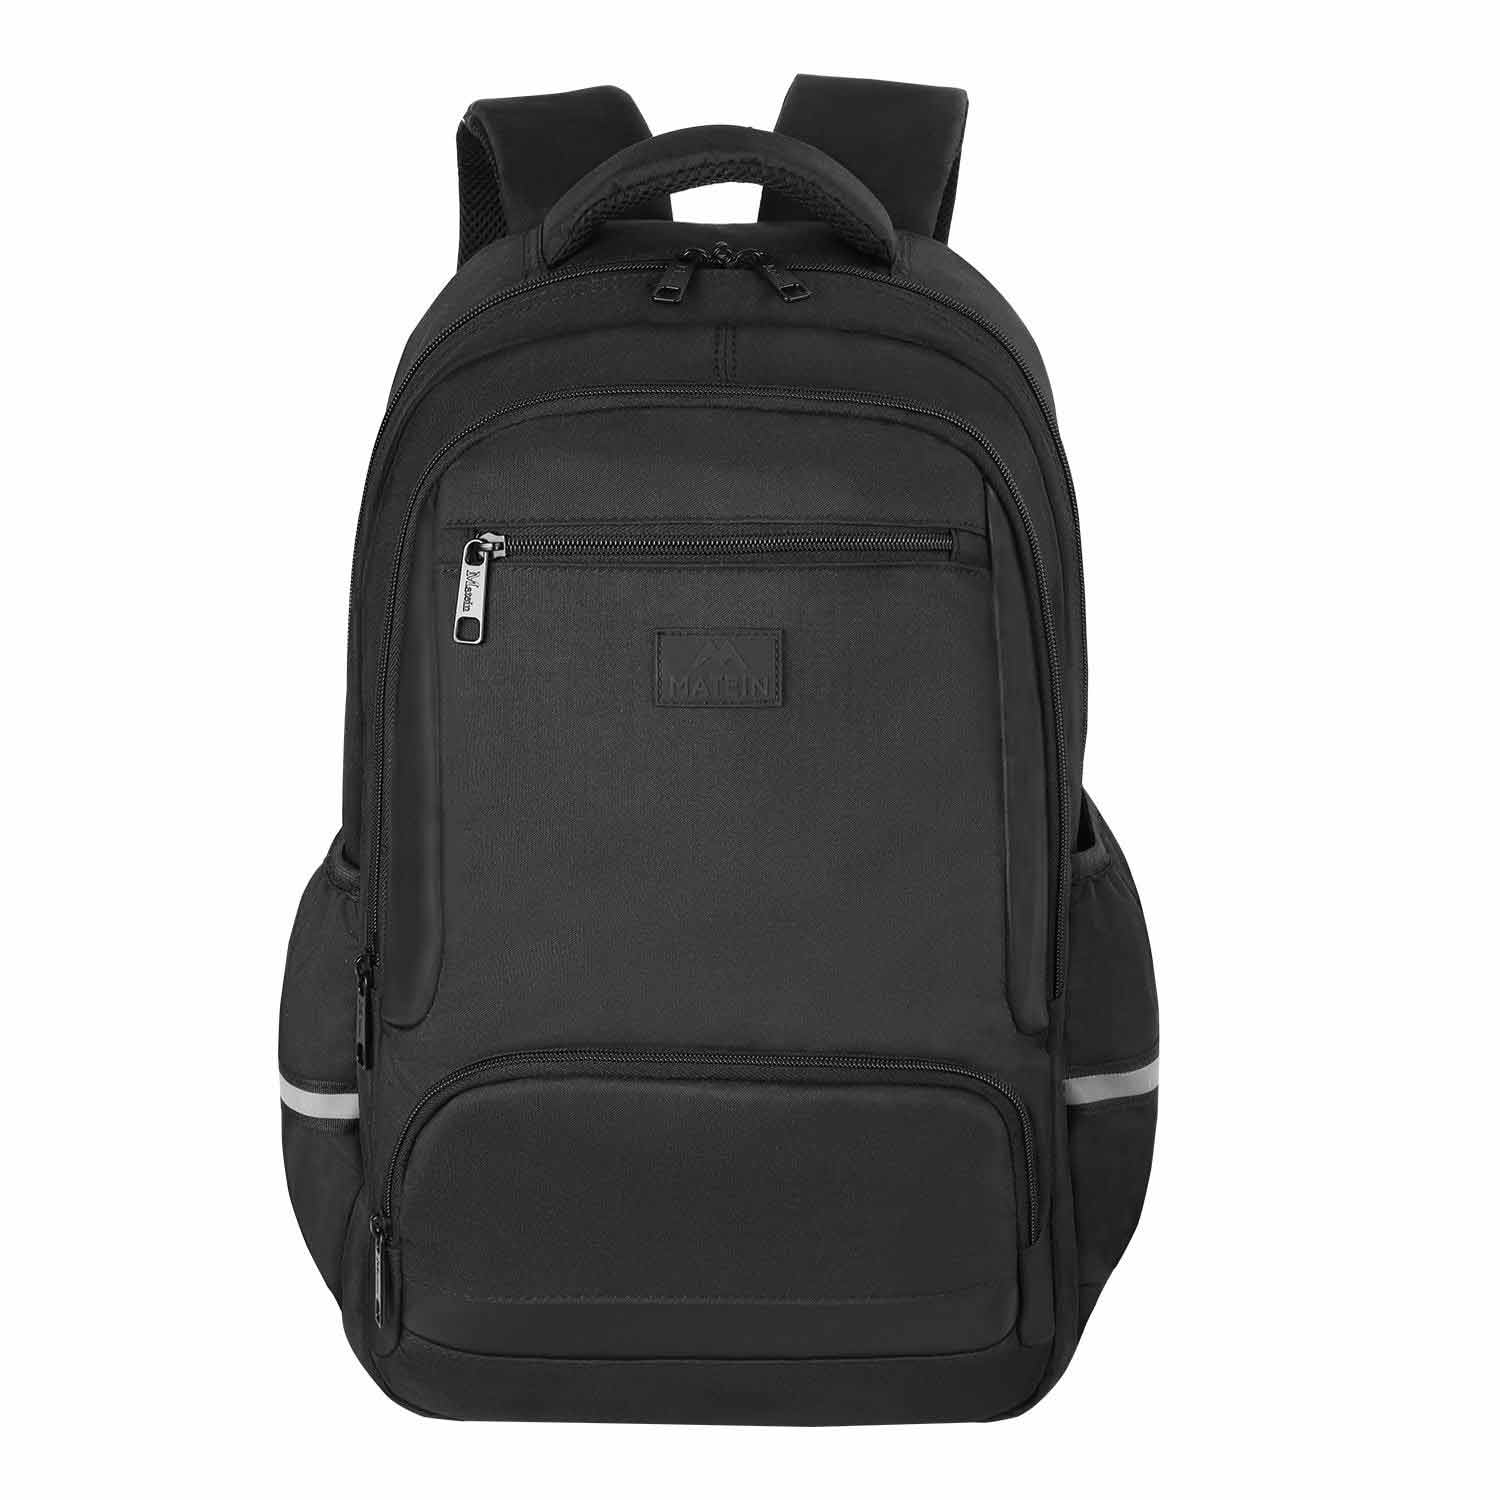 Matein Tulia School Backpack - travel laptop backpack